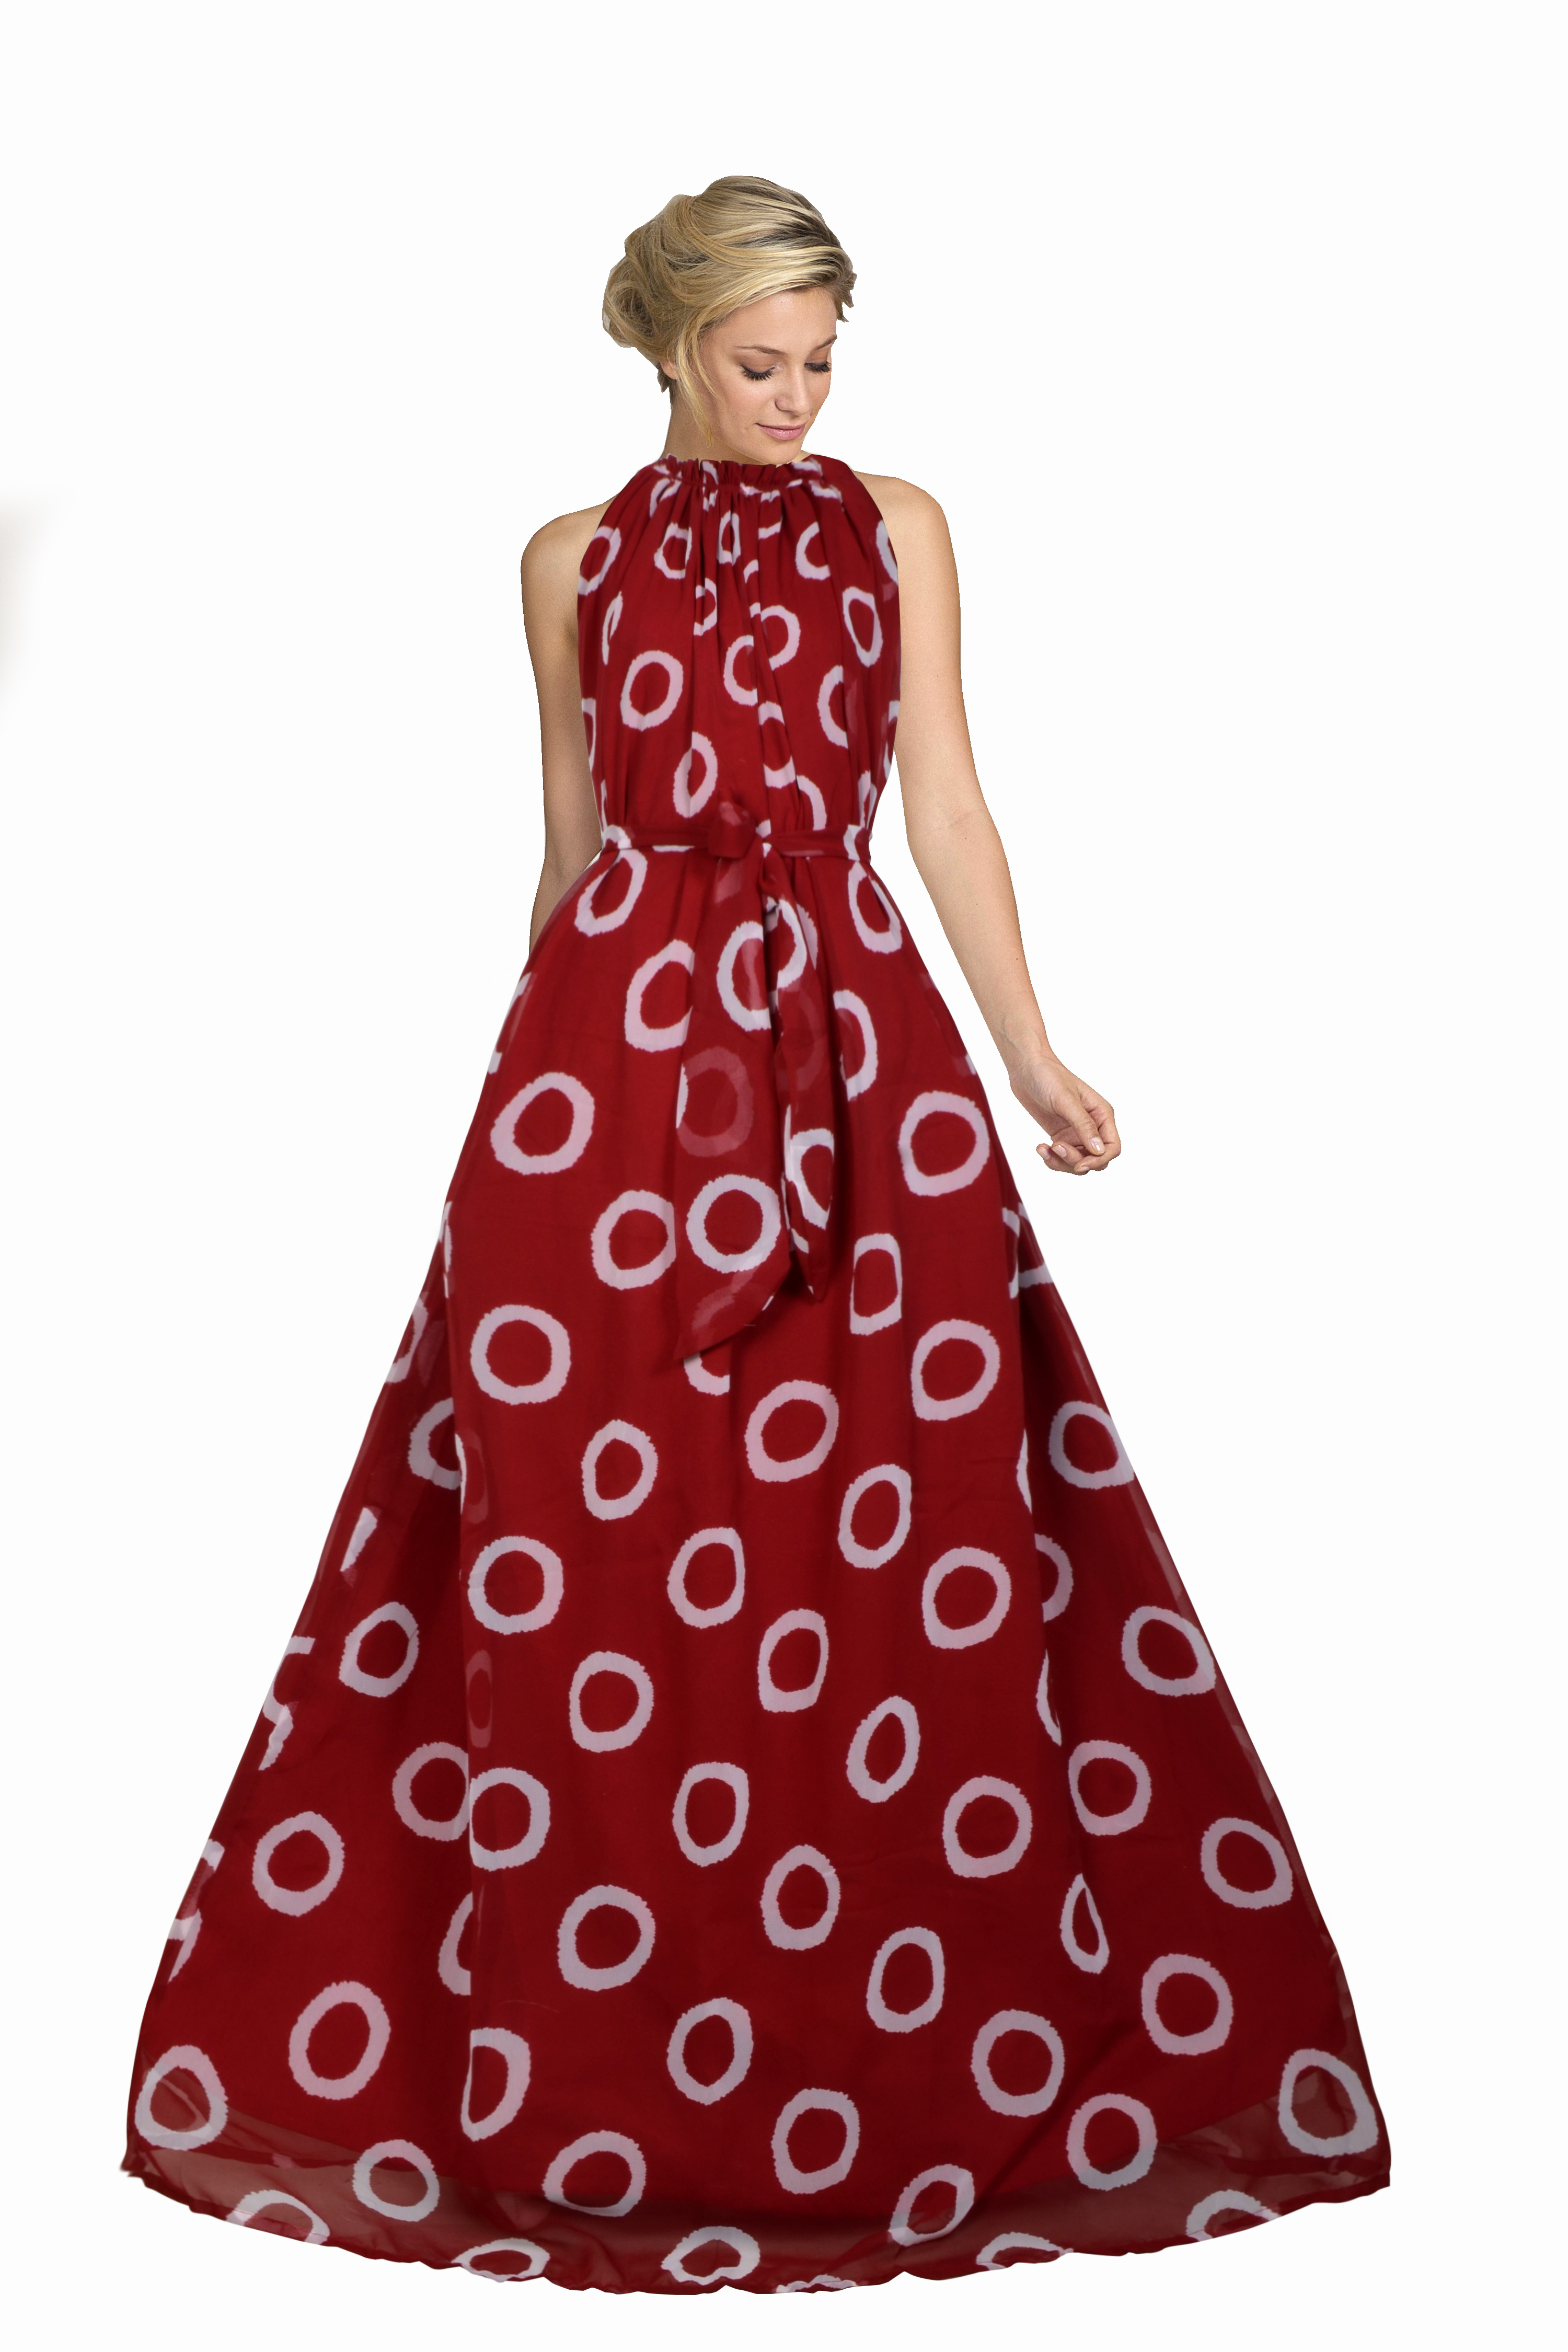 Dyna ring gown